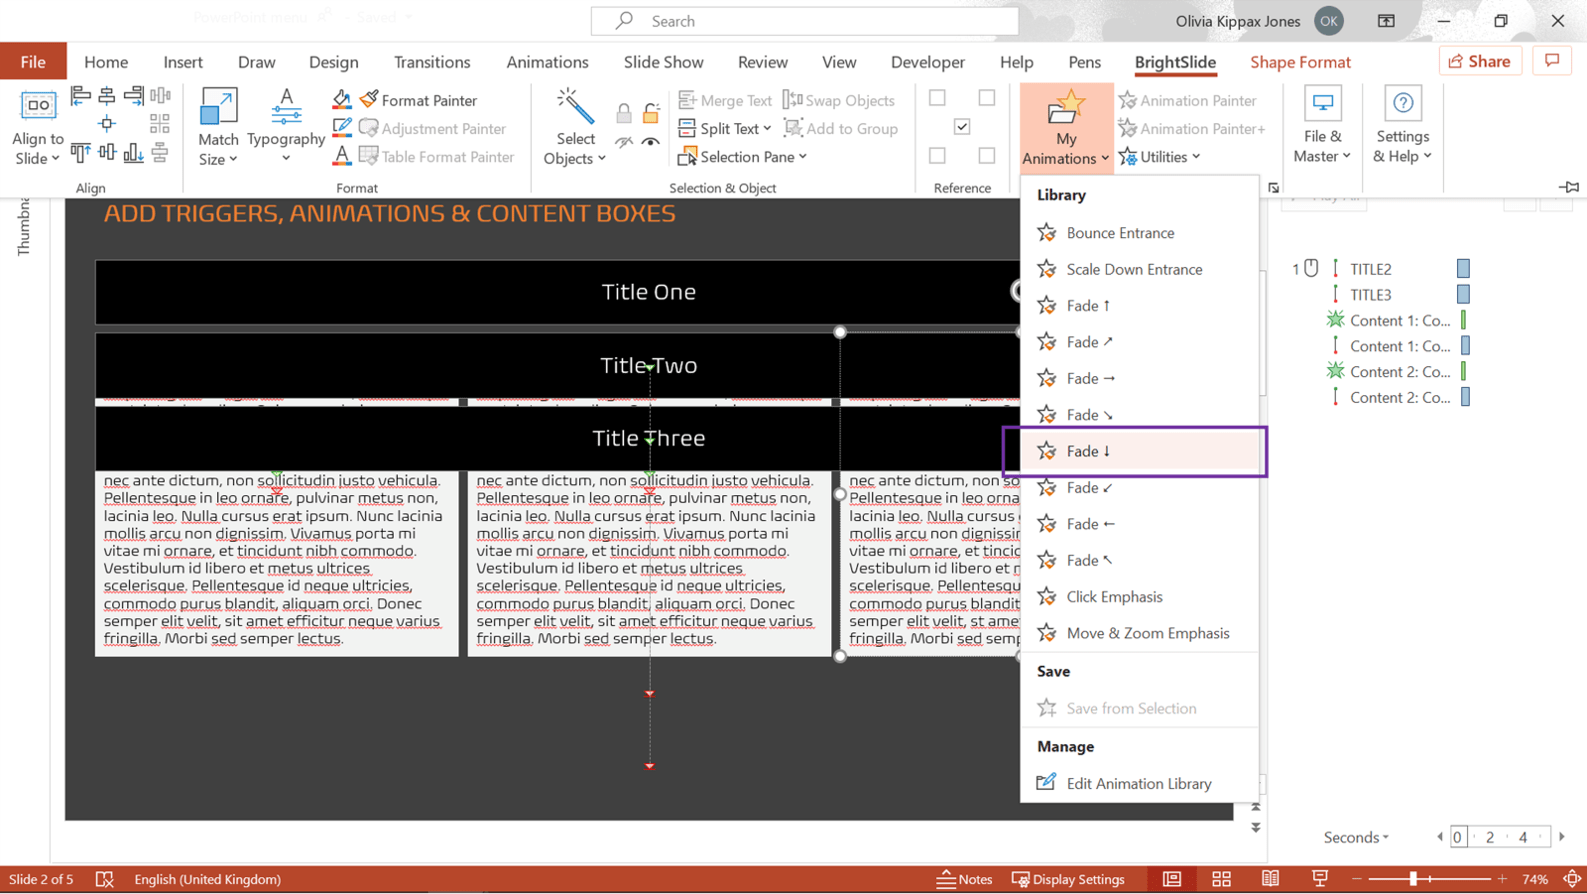 Screenshot of PowerPoint showing the BrightSlide tab with My Animations library highlighted